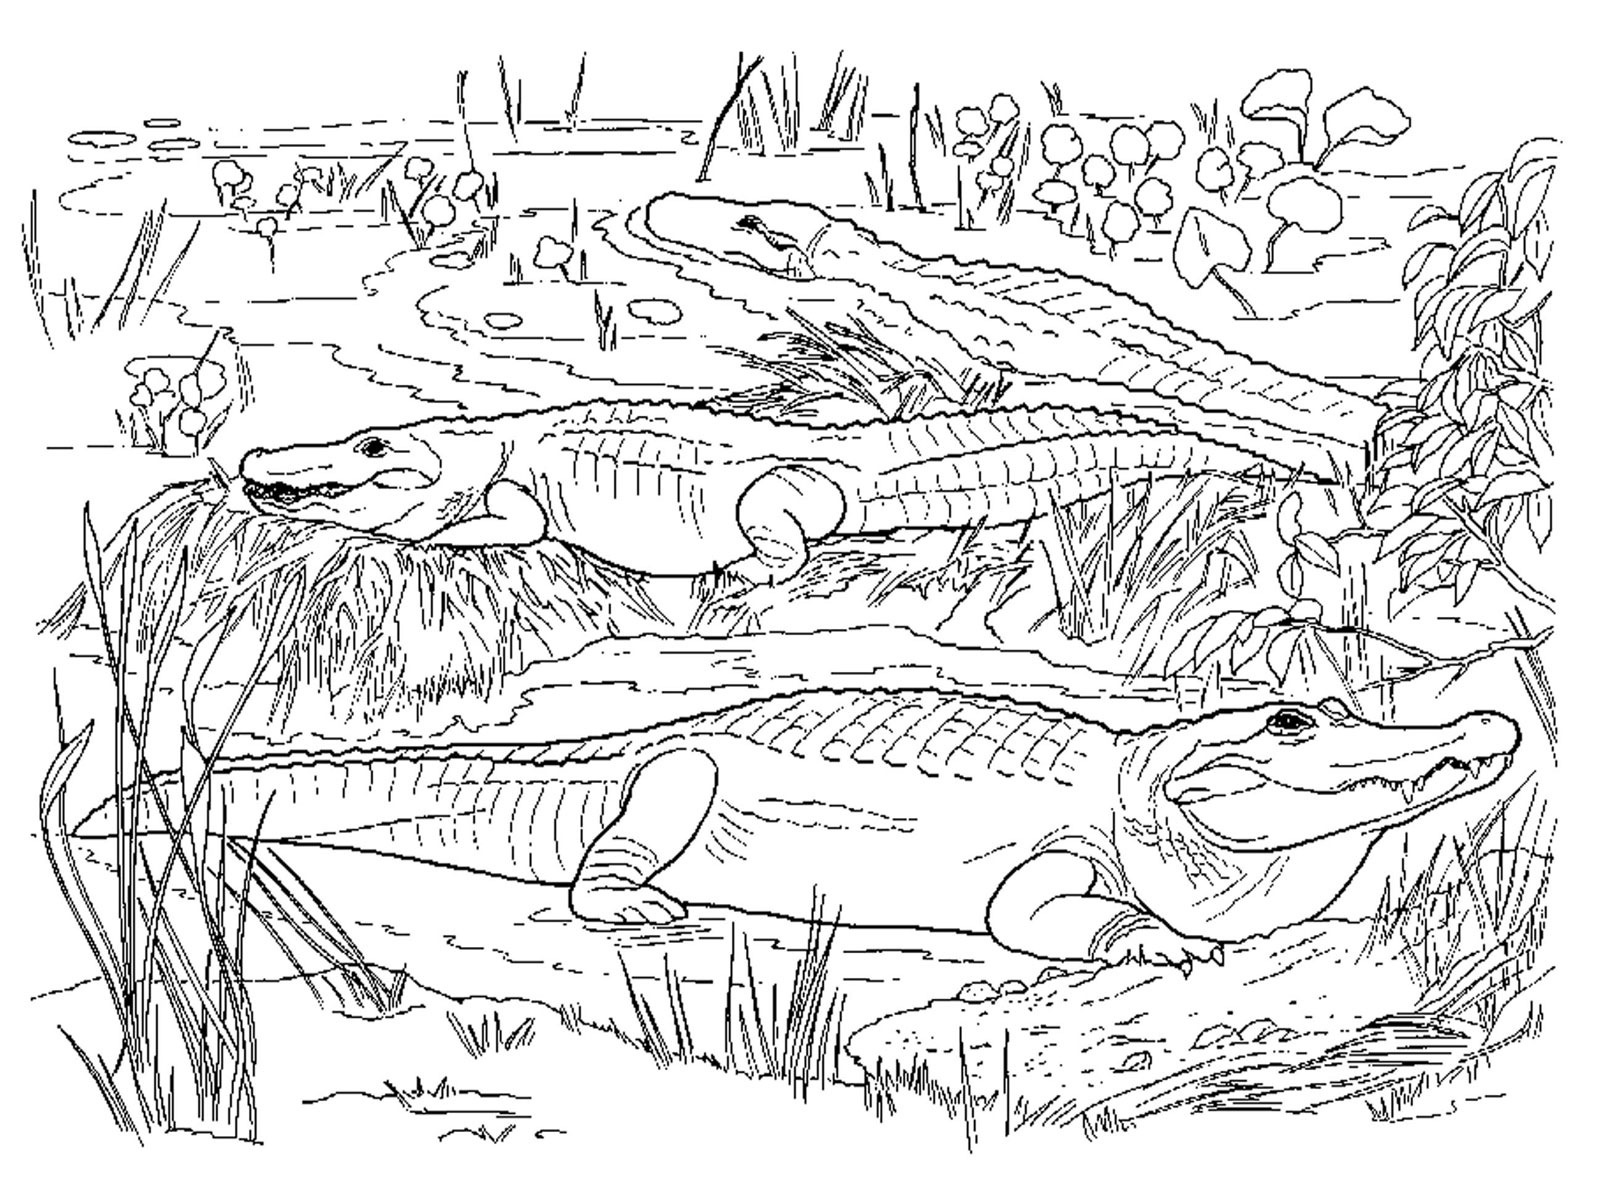 coloring page alligator free printable alligator coloring pages for kids coloring page alligator